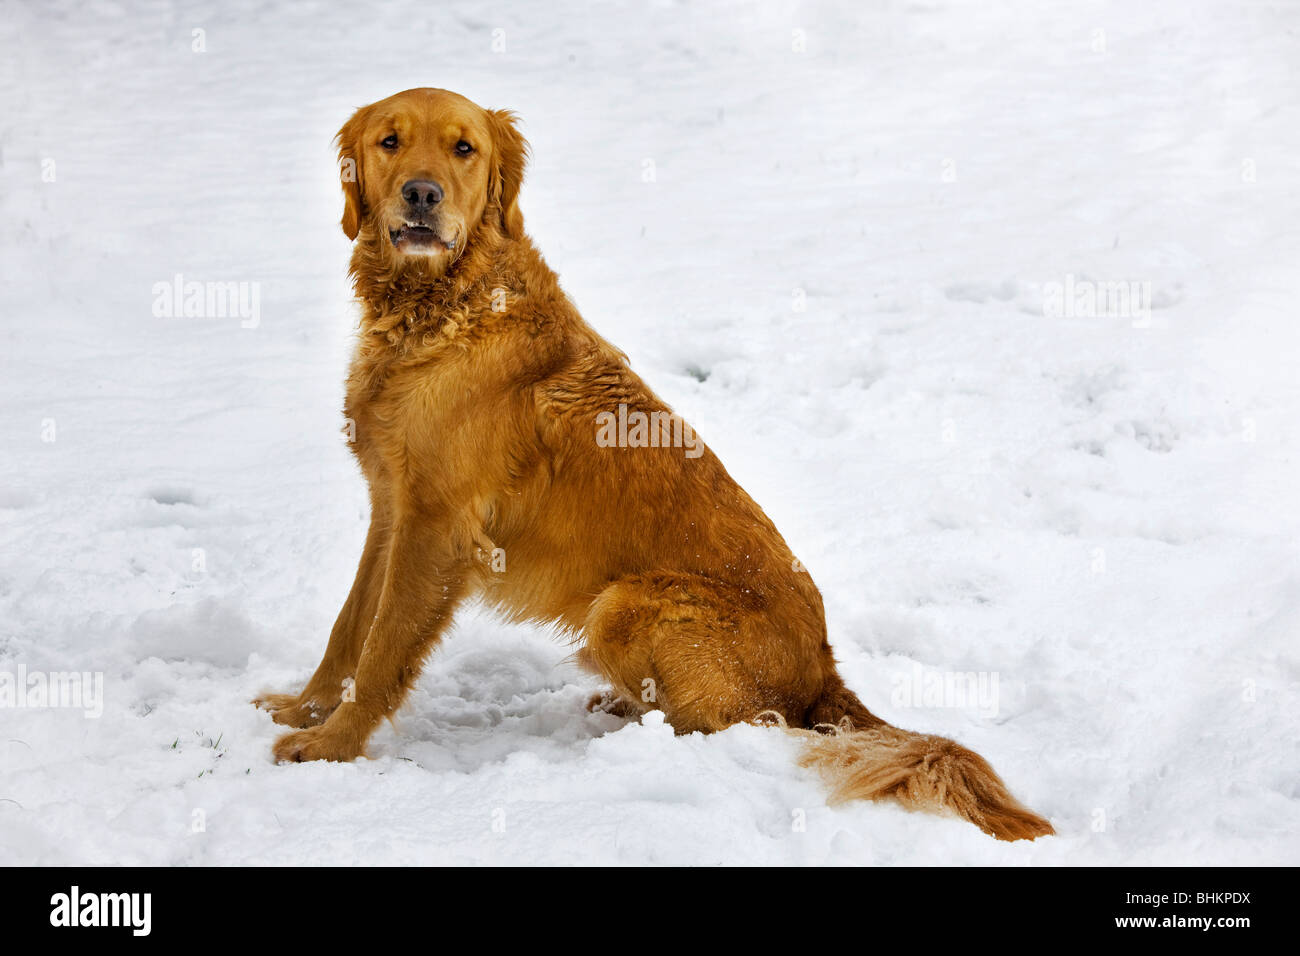 Golden Retriever (Canis lupus familiaris) in garden in the snow in winter - Stock Image